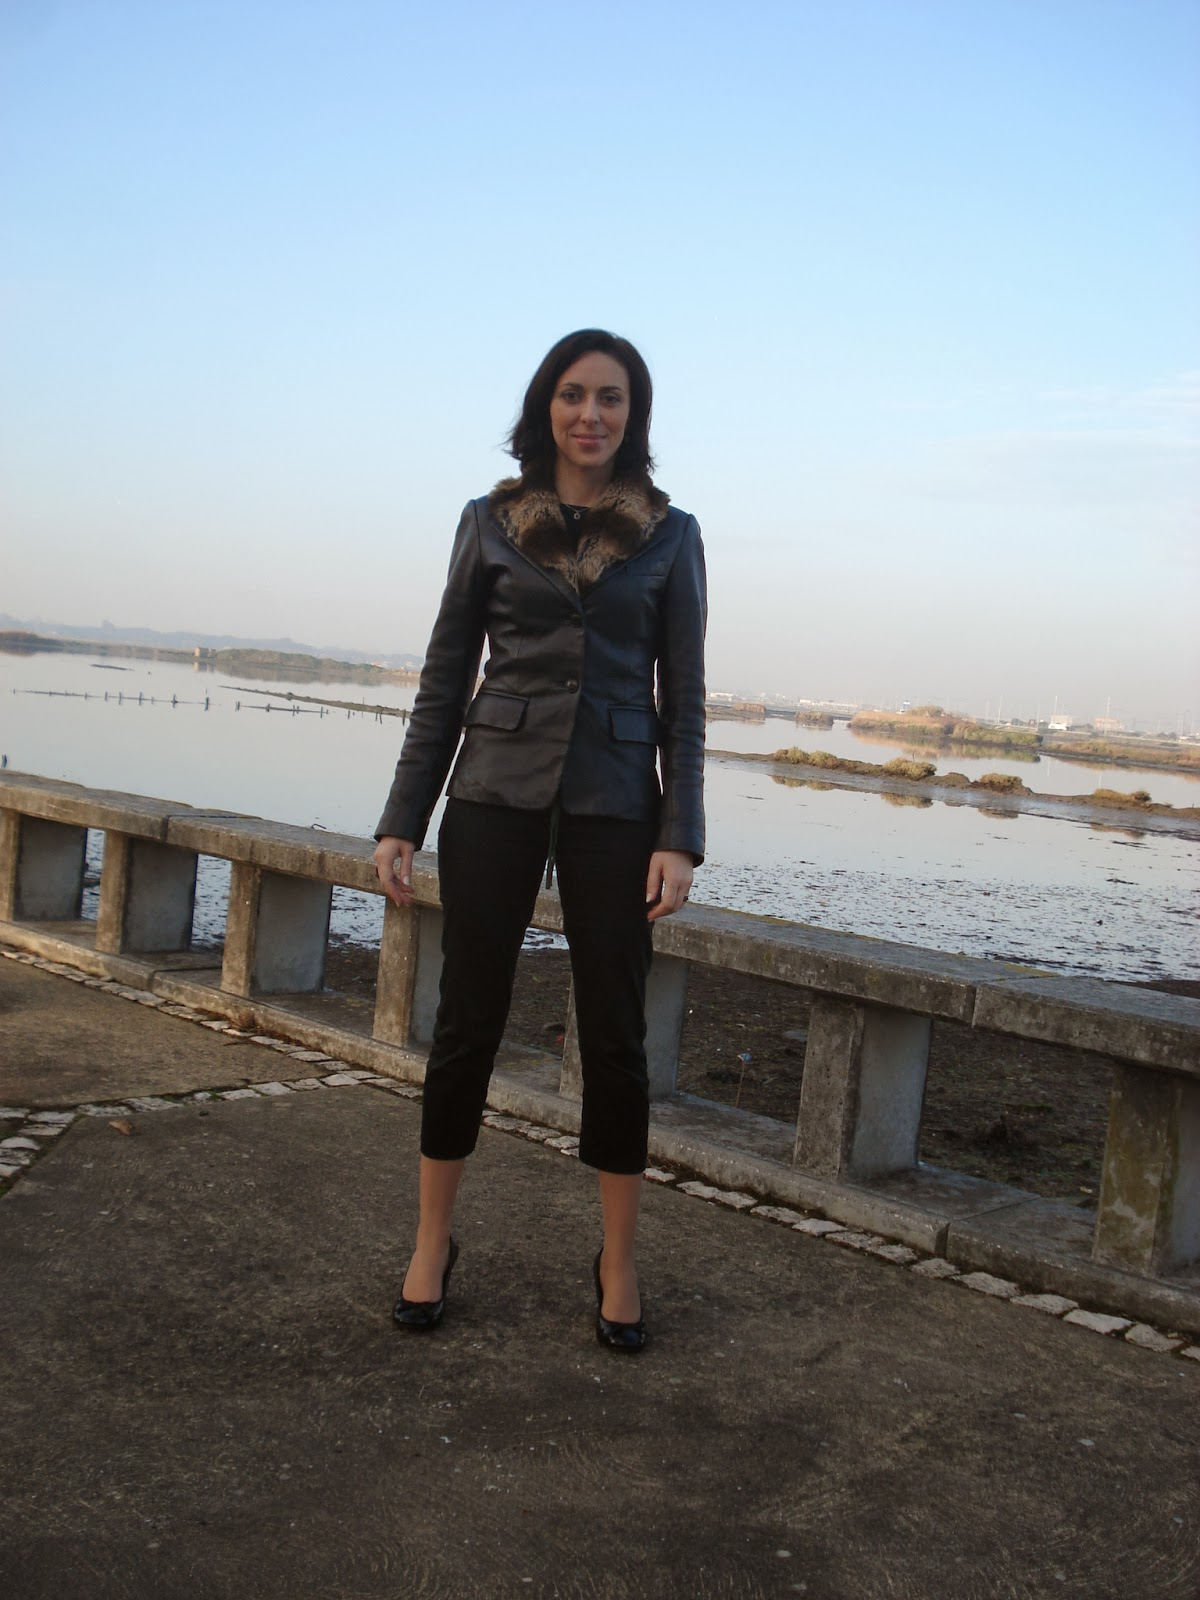 sapatinho, moda, blog, blogue, blogger, aveiro, portugal, top, 10, manuela, simões, look